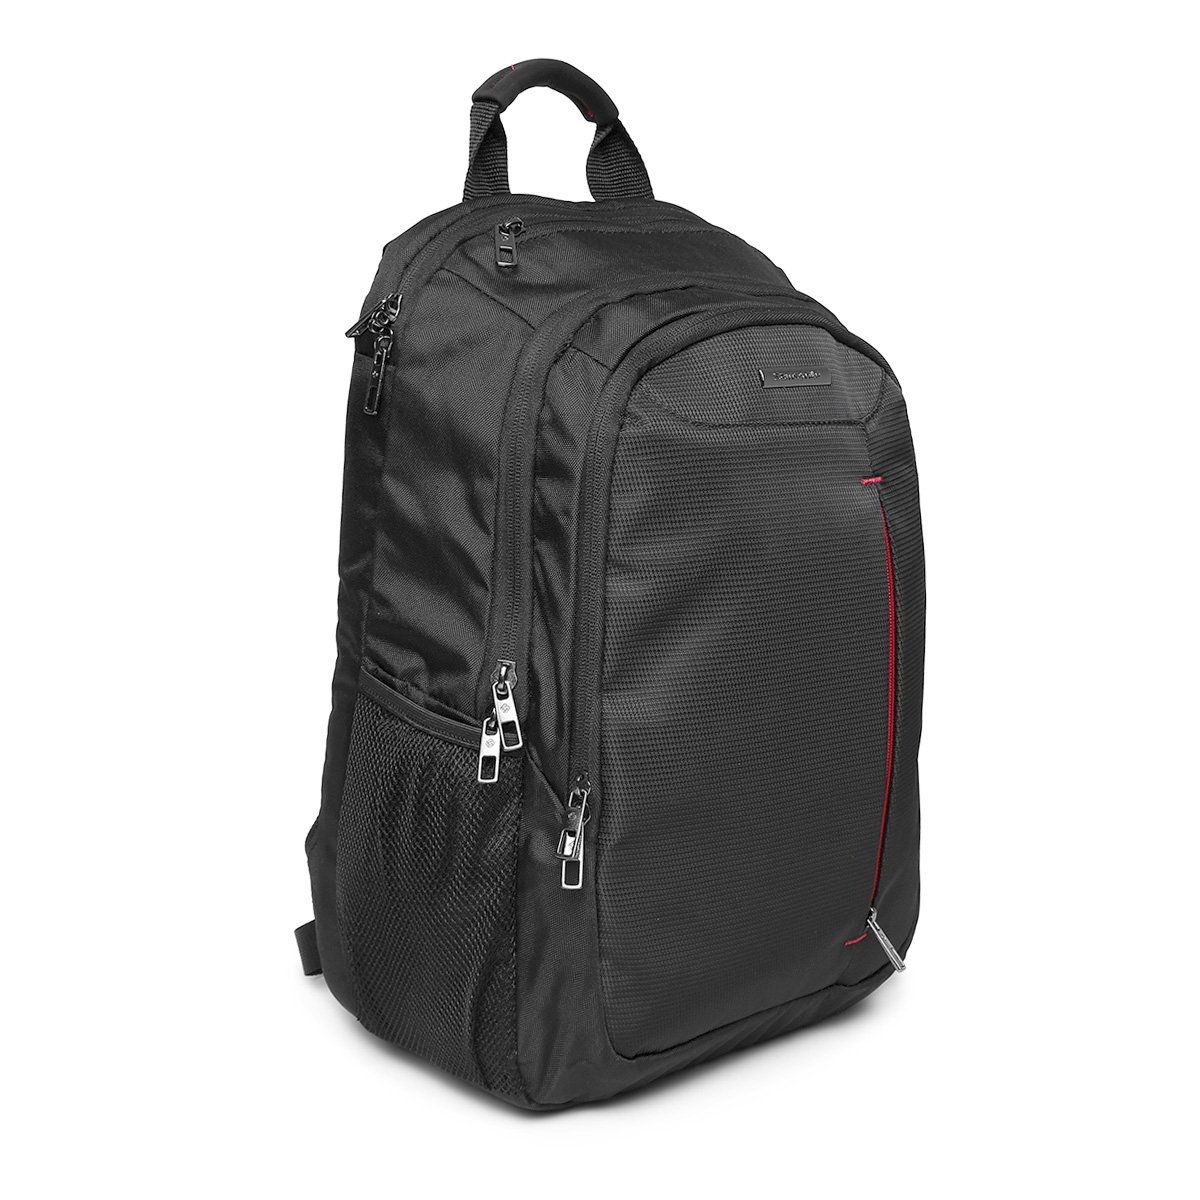 Mochila Samsonite para Notebook Guard IT Preto - 17